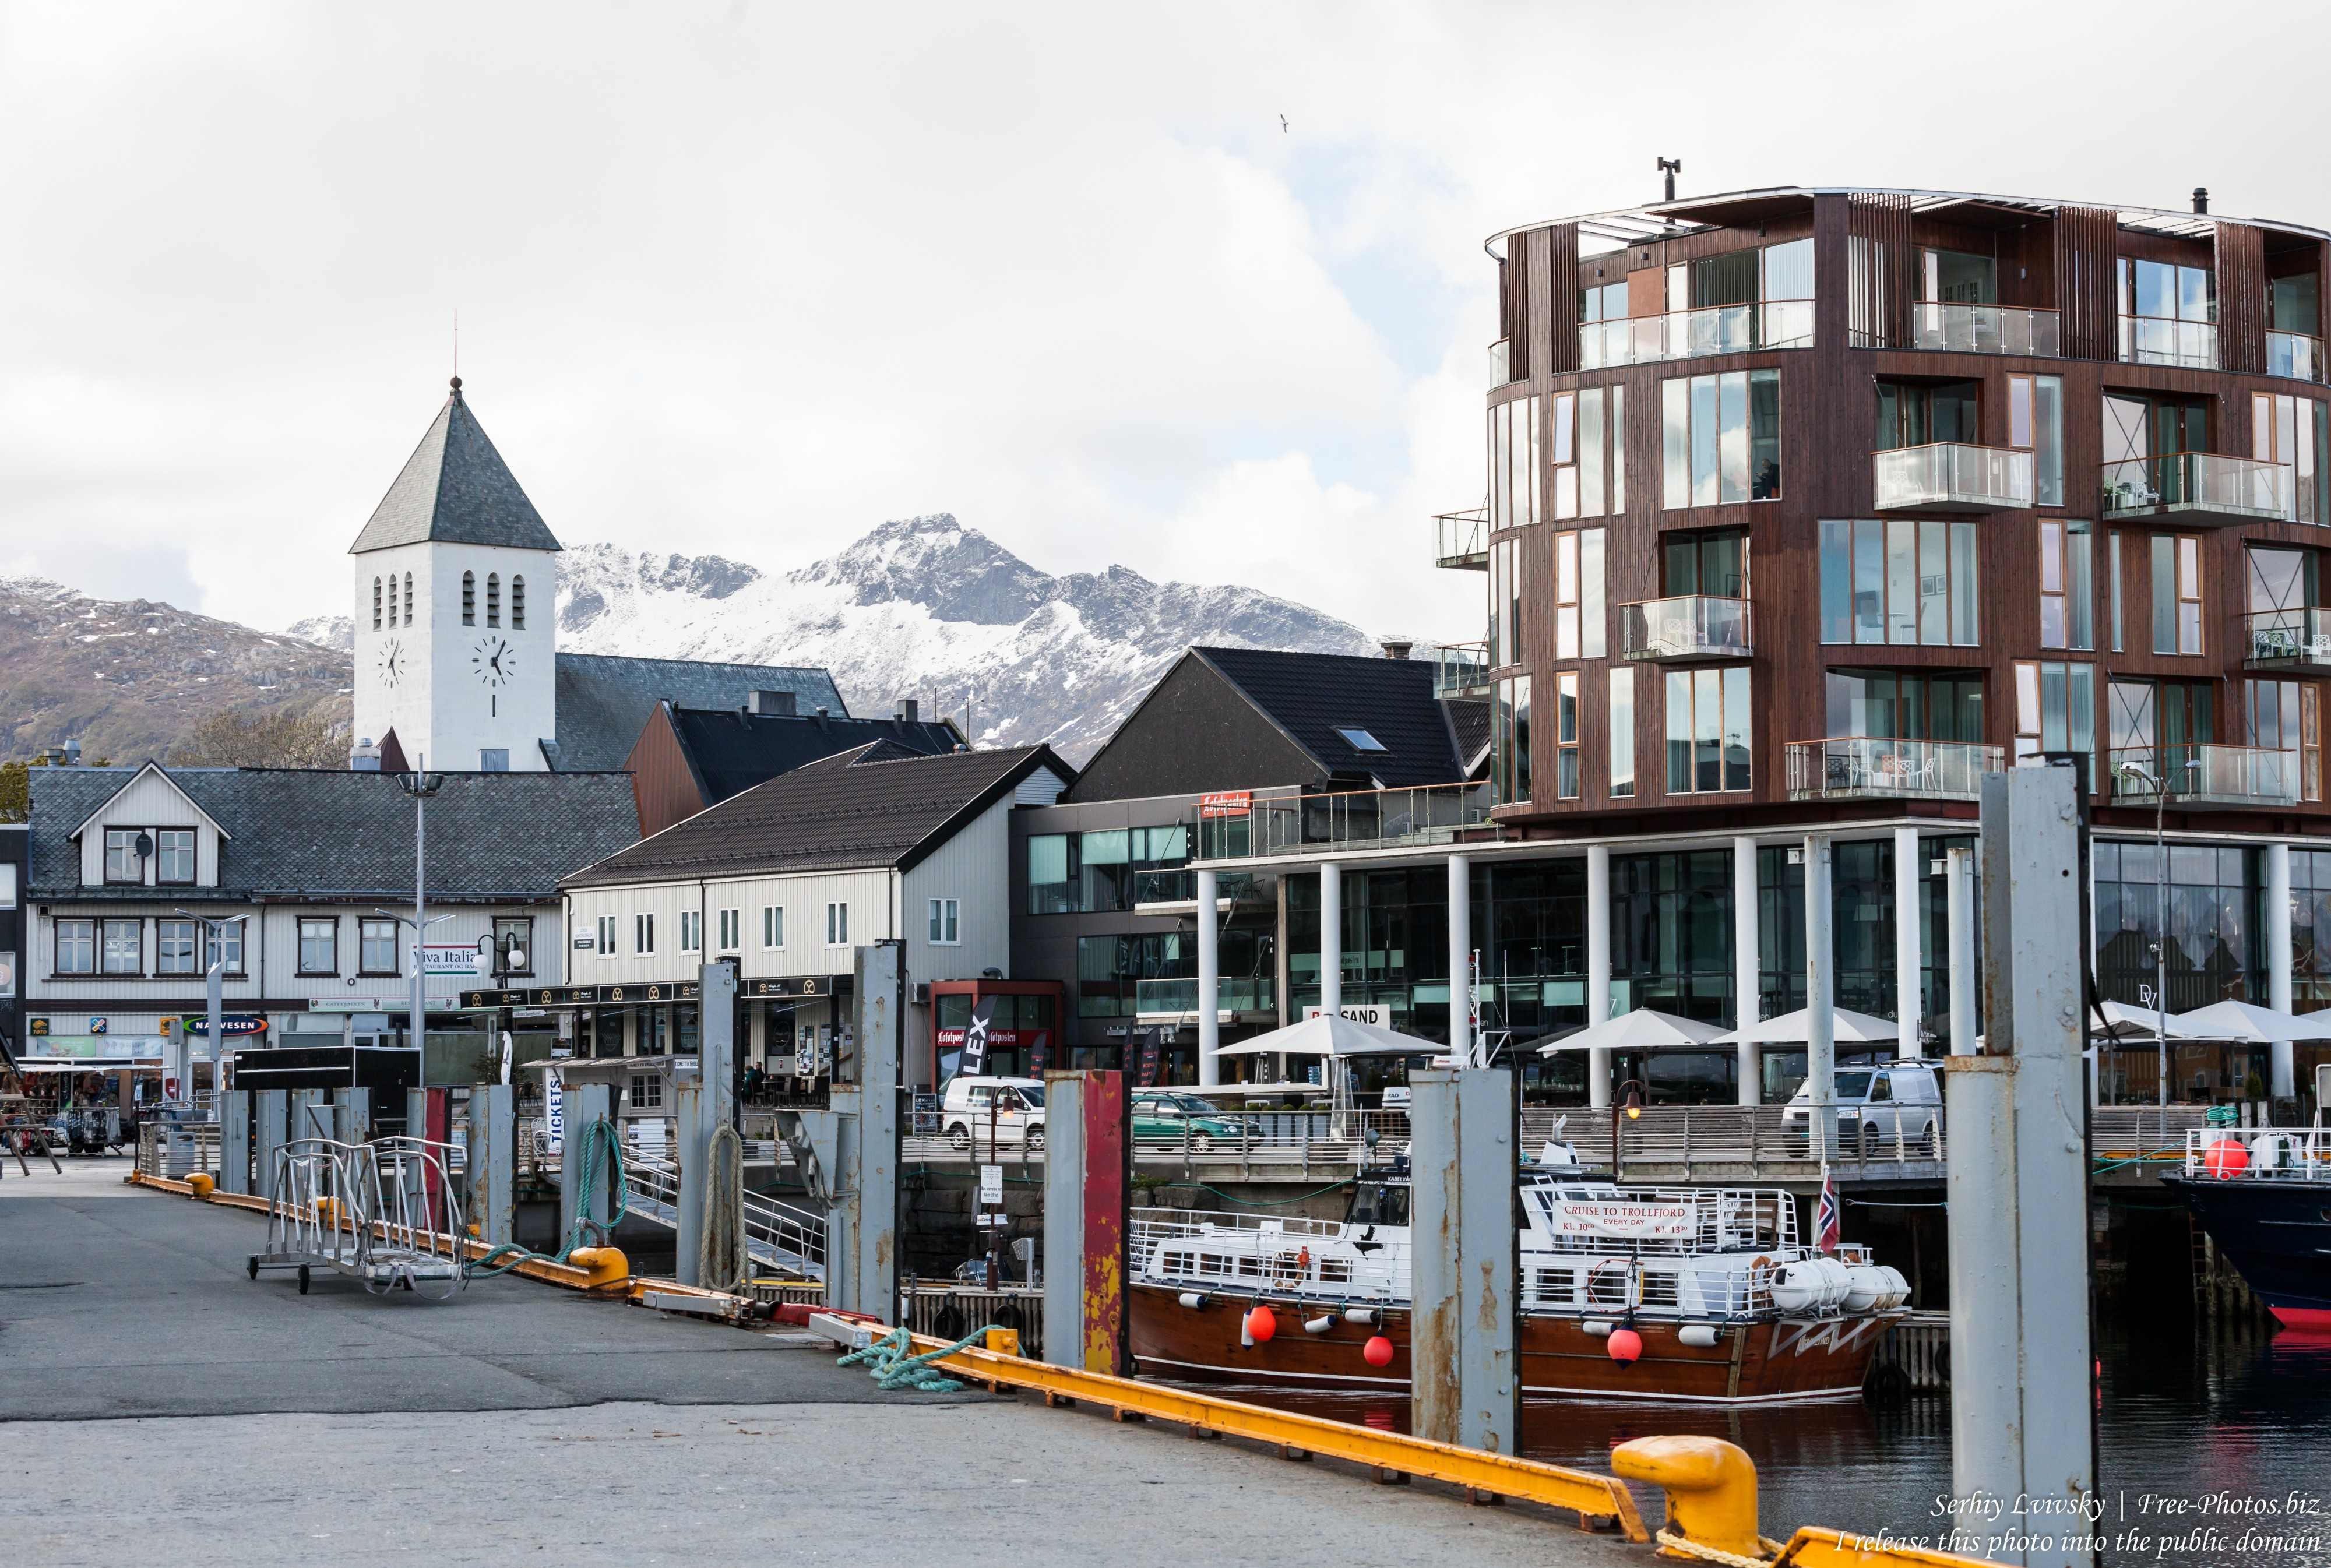 Svolvaer, Lofoten, Norway photographed in June 2018 by Serhiy Lvivsky, picture 10